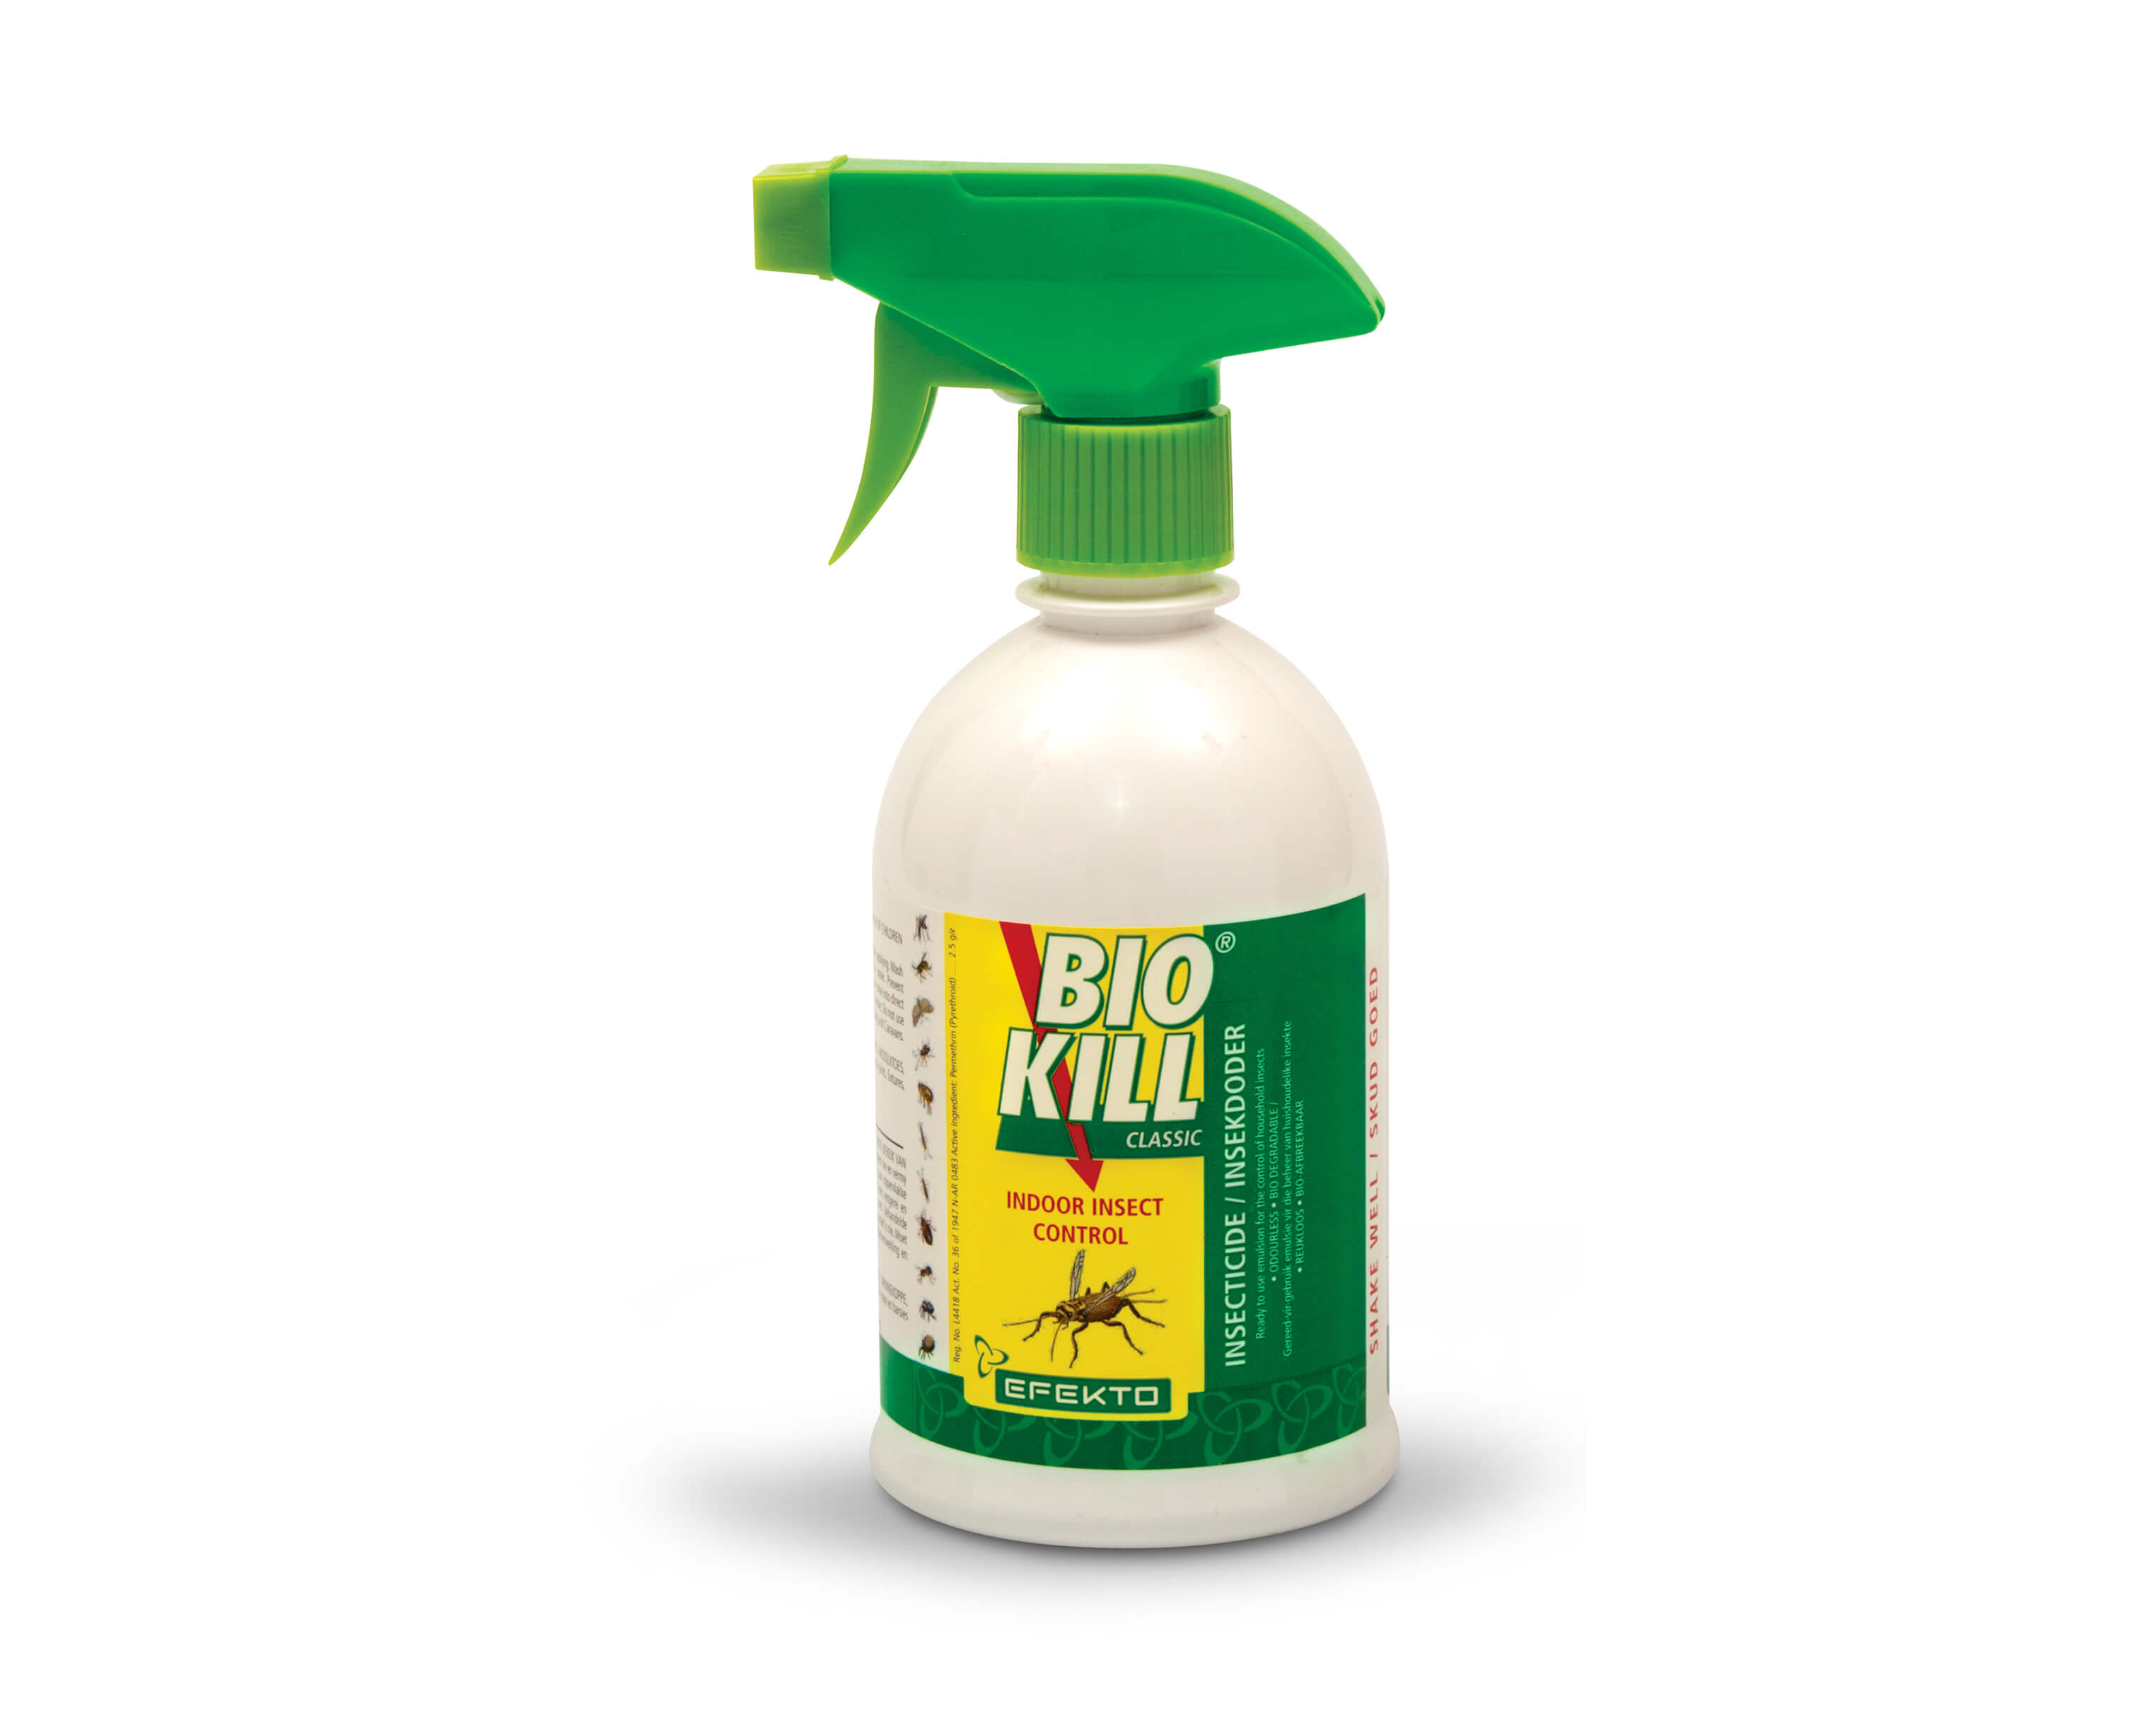 ready-to-use (no dilution necessary) for the control of: Ants. Fleas. Bedbugs. Spiders. Cockroaches. Ticks etc,